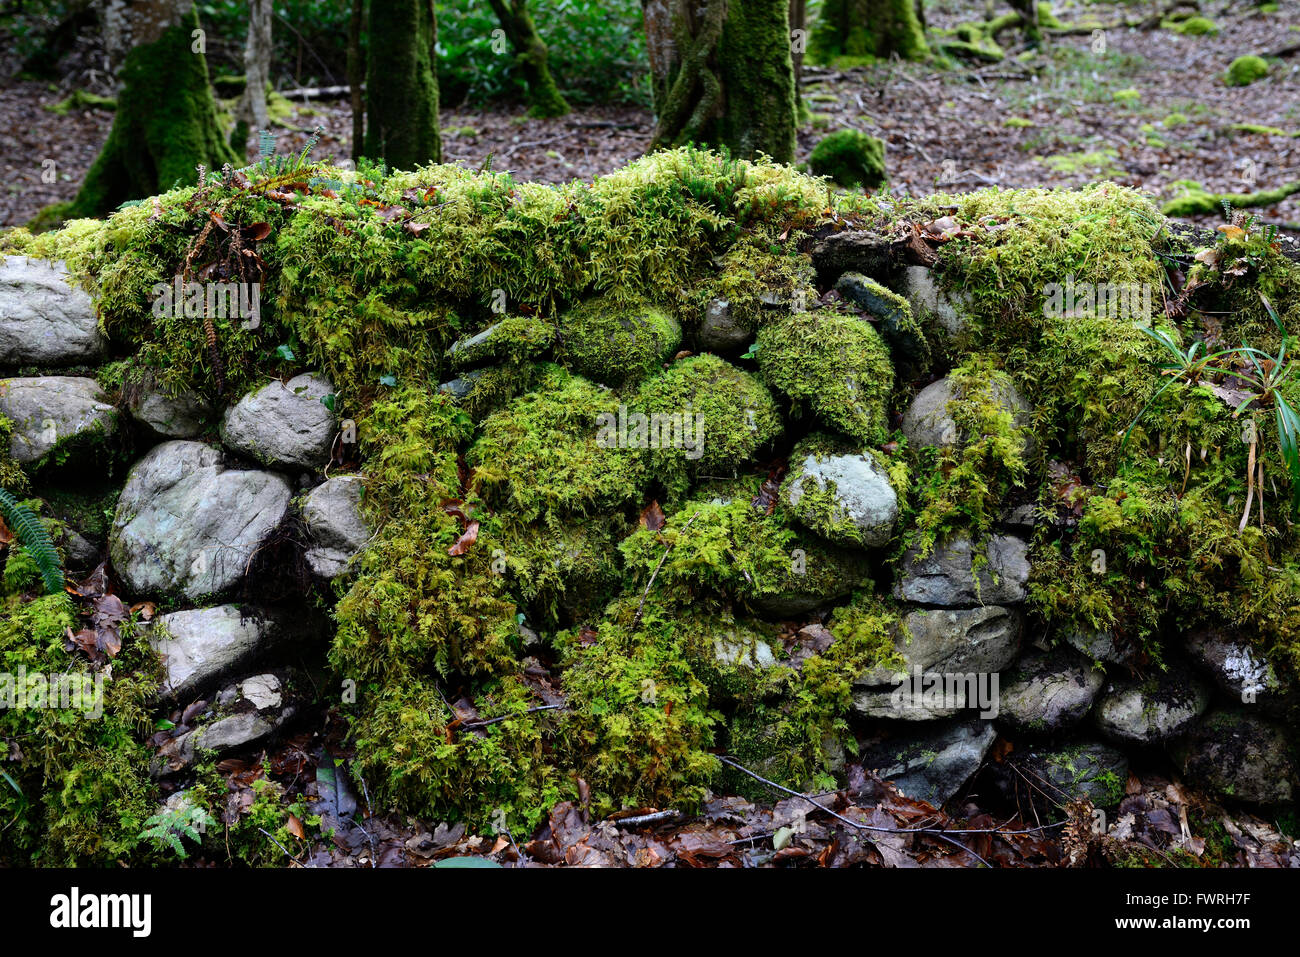 Moss covered wall damp wet moist wood woodland shade shady shaded mossy growth growing RM Floral - Stock Image